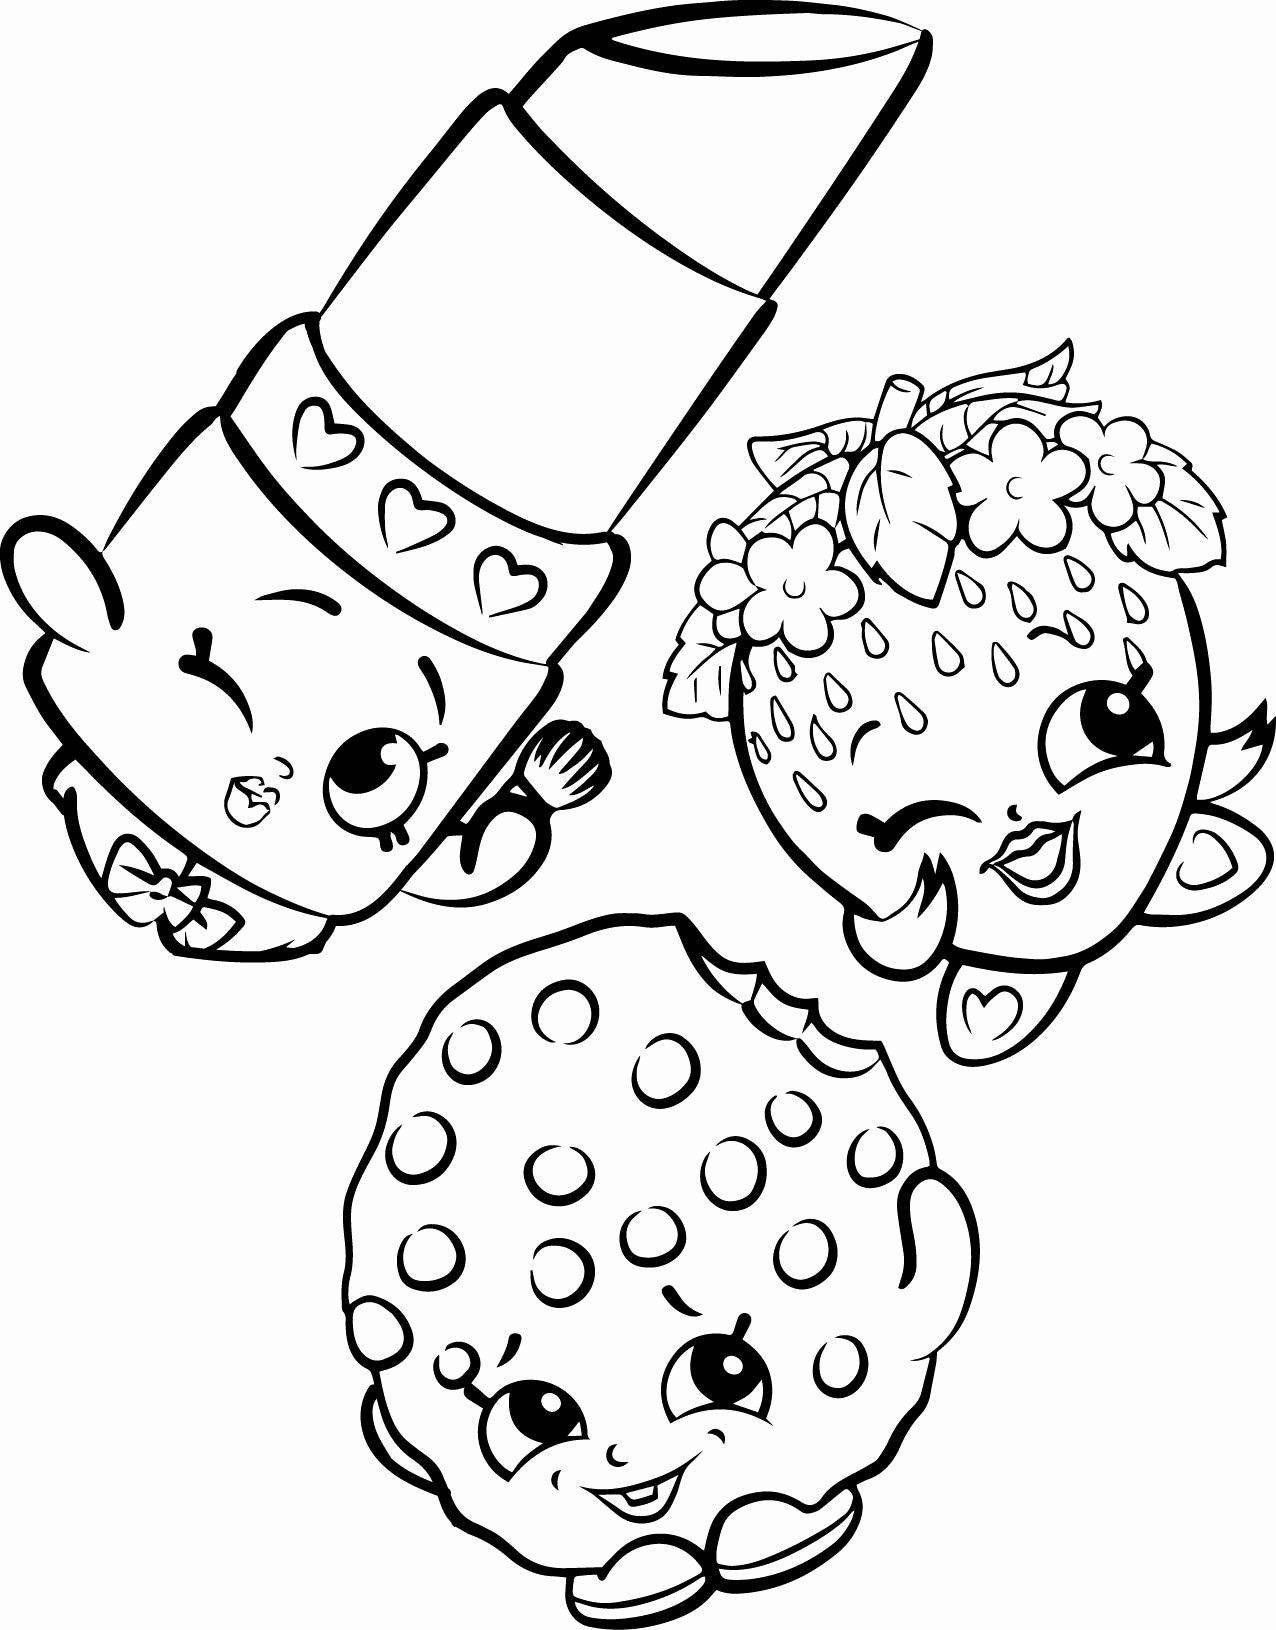 30 New Free Shopkins Coloring Pages in 2020 | Shopkins ...